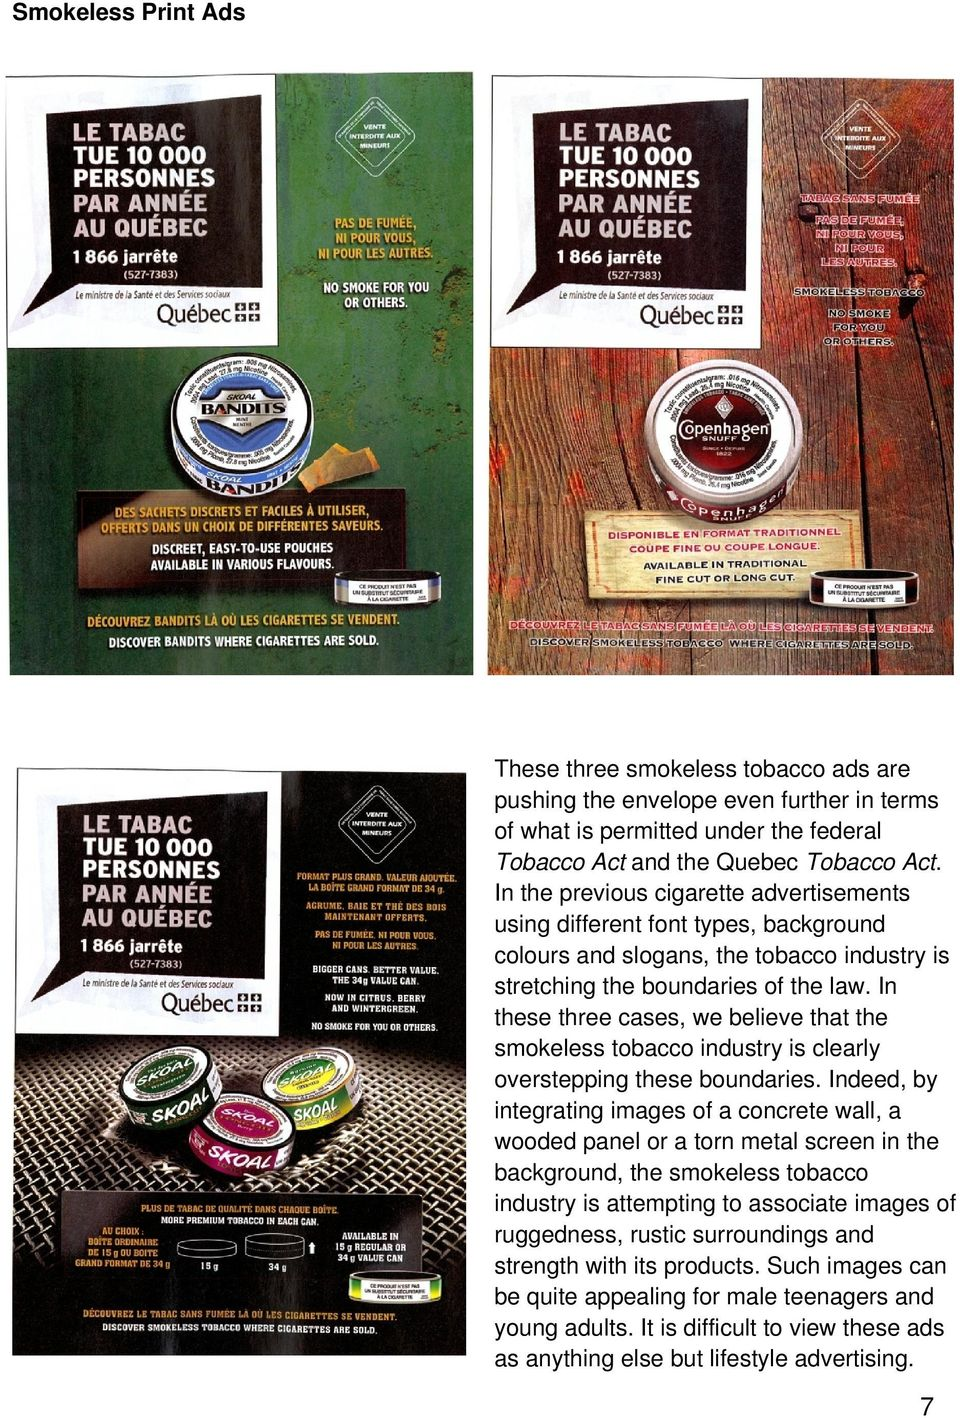 In these three cases, we believe that the smokeless tobacco industry is clearly overstepping these boundaries.